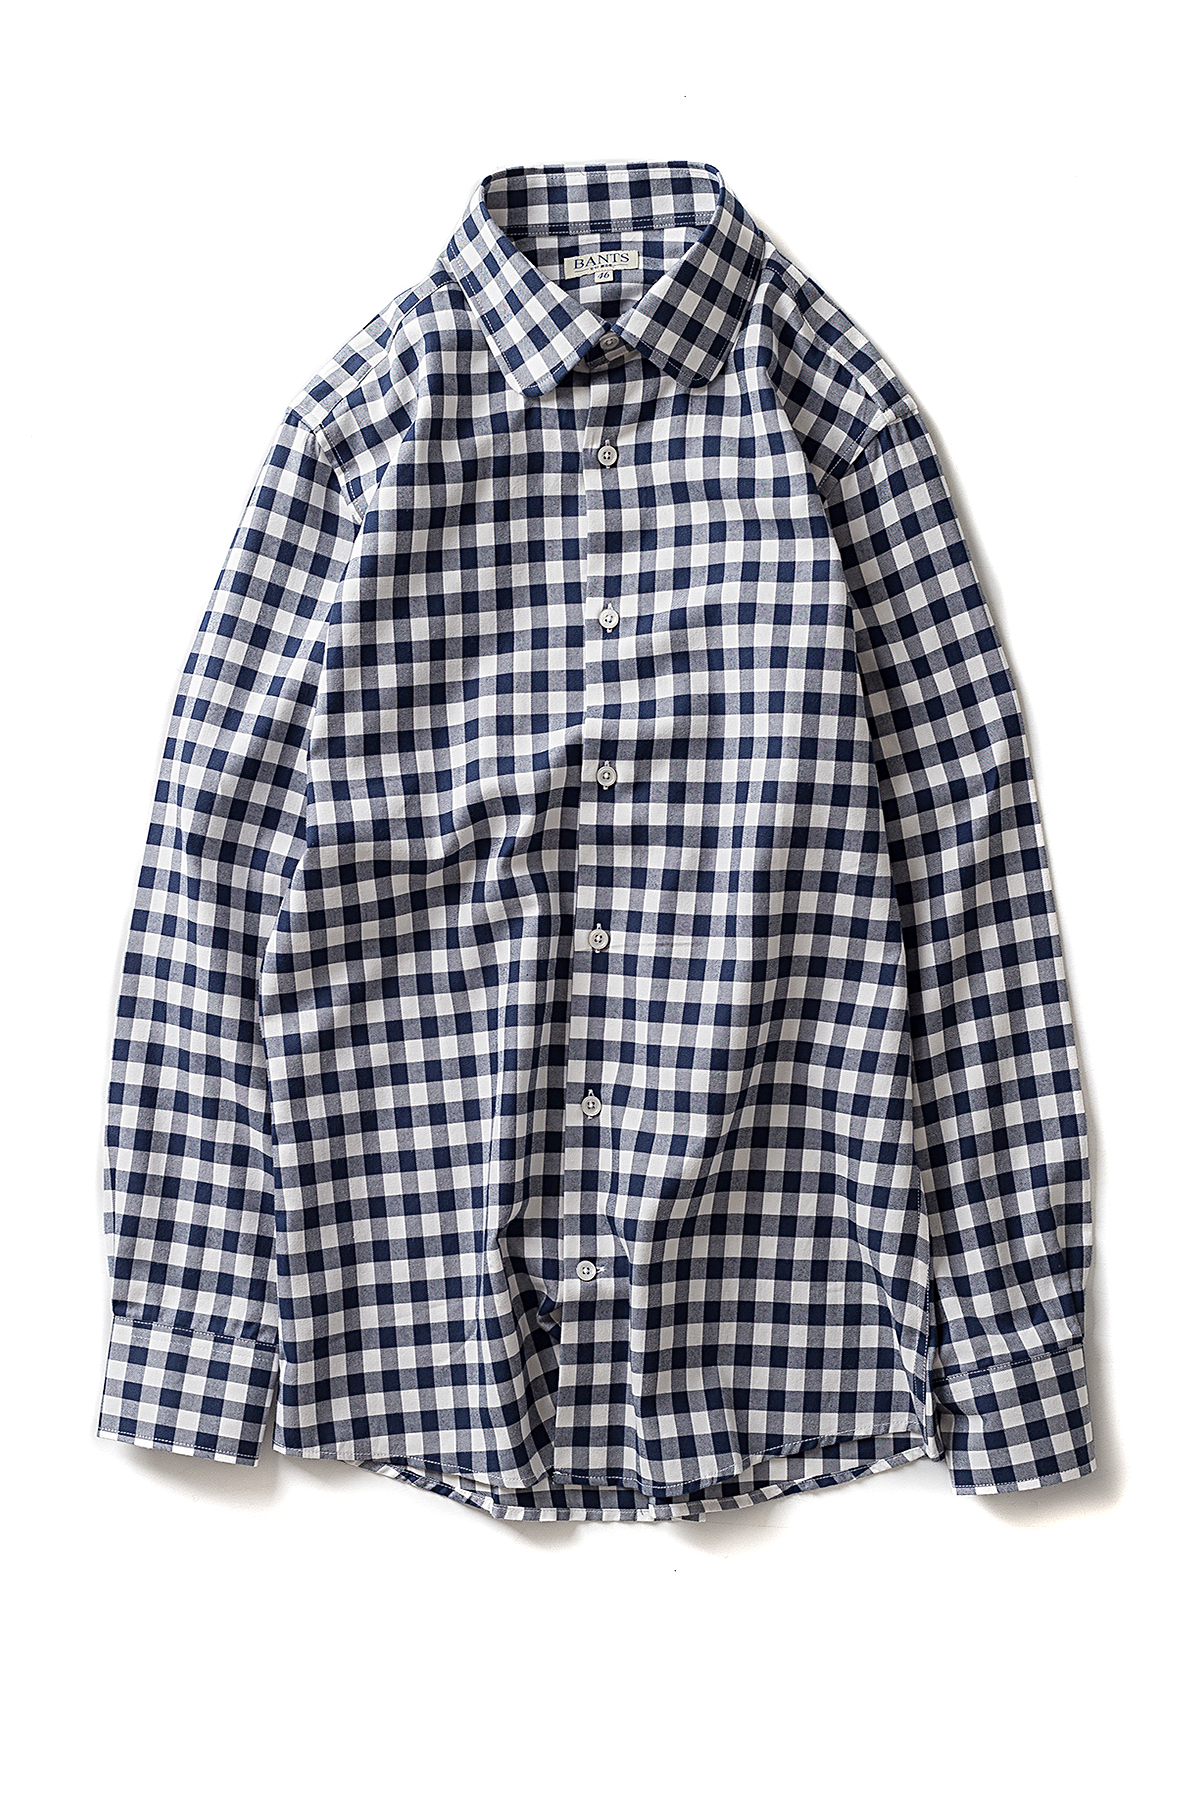 BANTS : Flannel Round Collar Shirts (Navy / White)